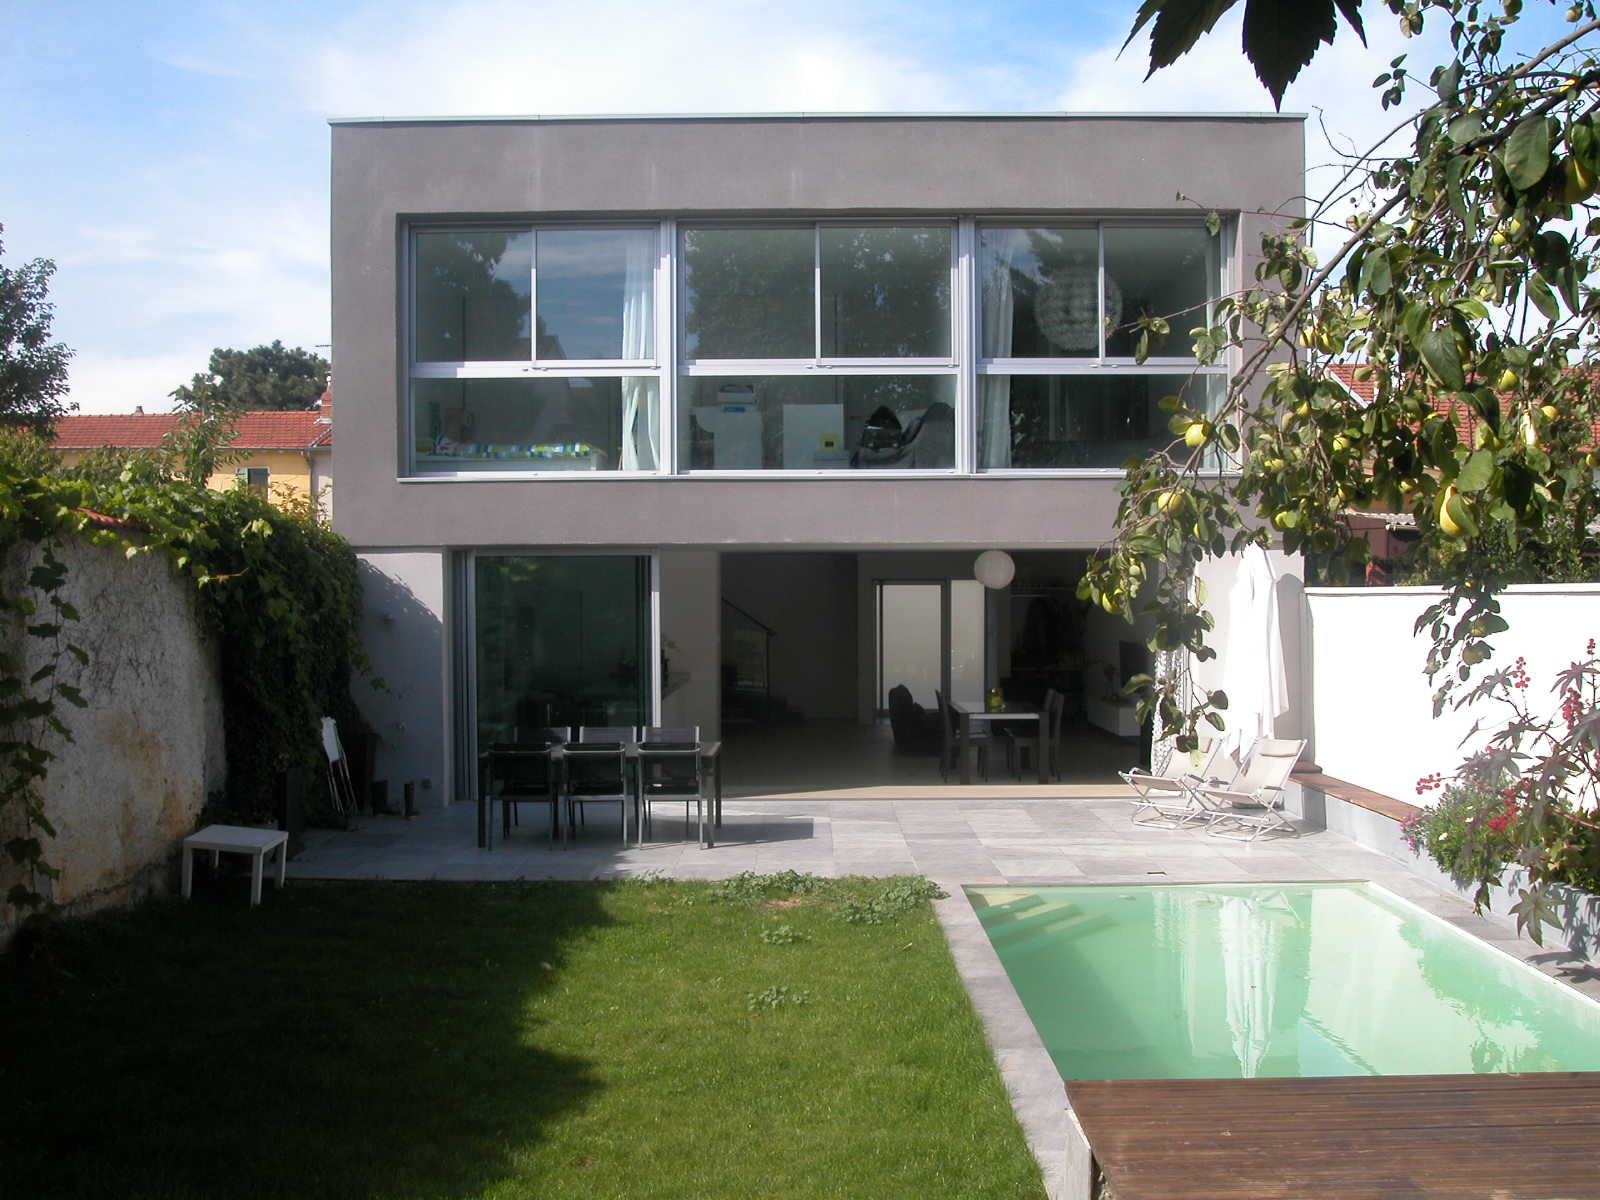 Maison contemporaine var maison moderne for Maison moderne architecte